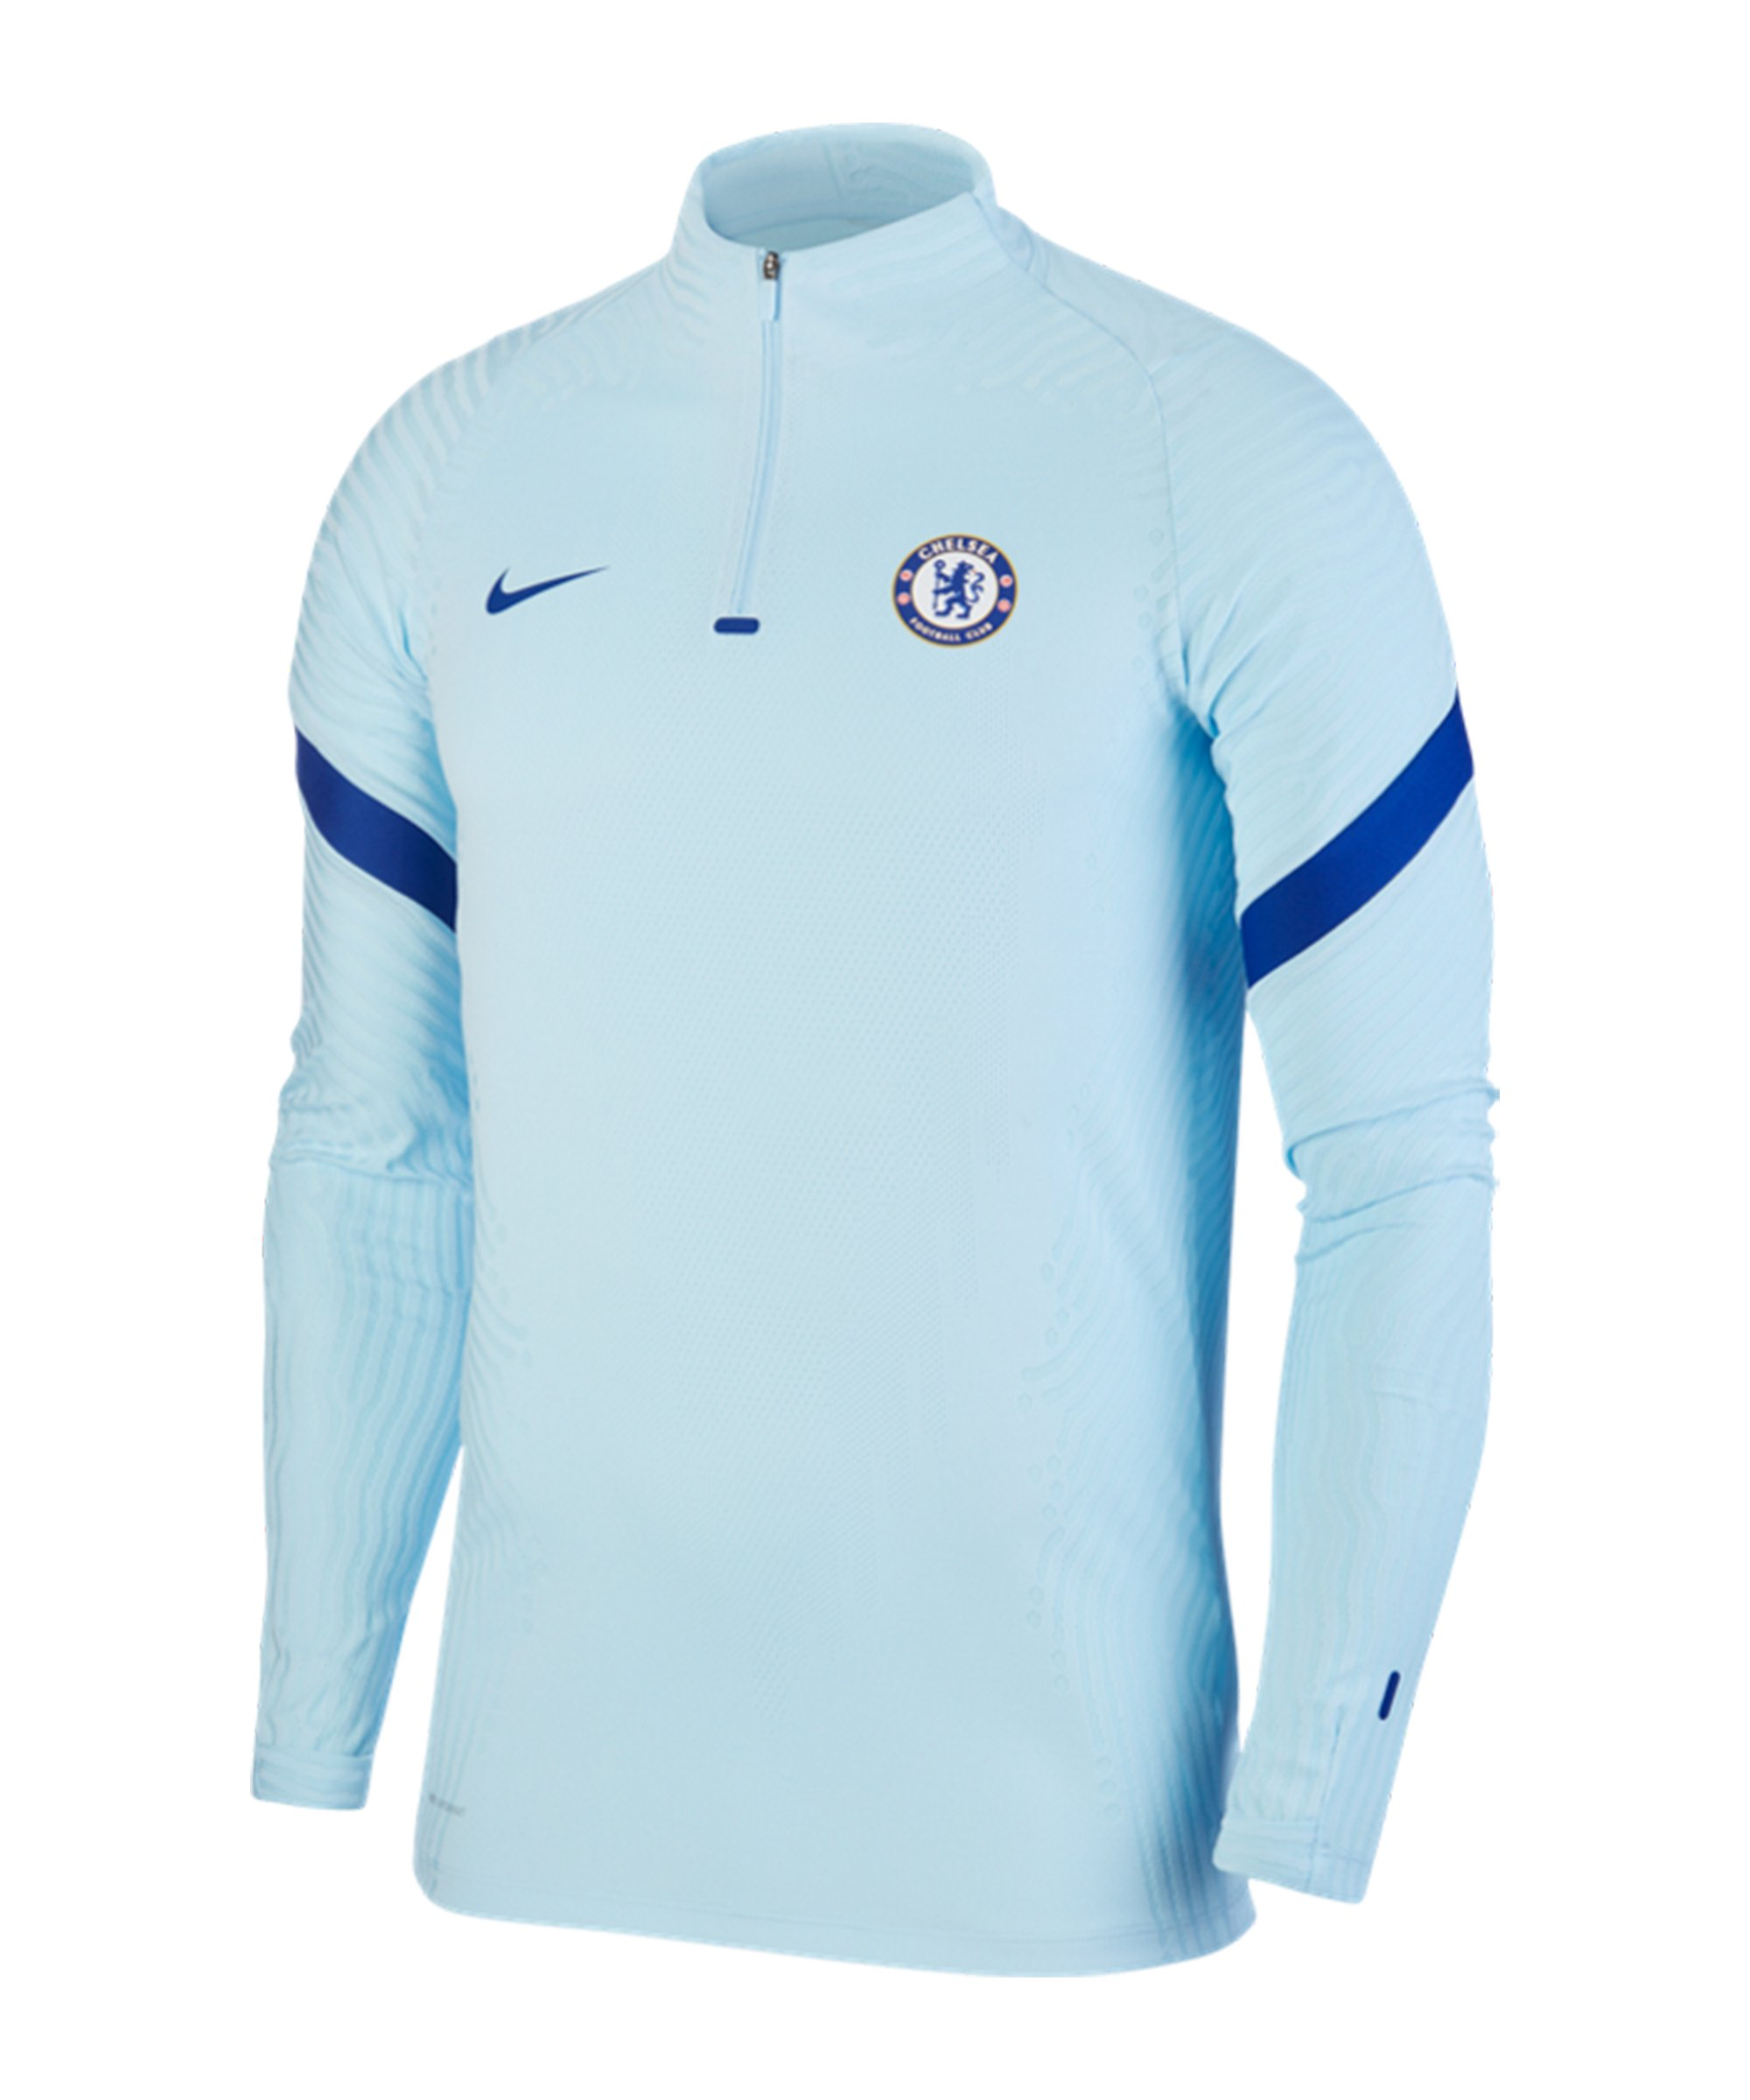 Nike FC Chelsea London Vaporknit 1/4 Zip Top F495 - blau